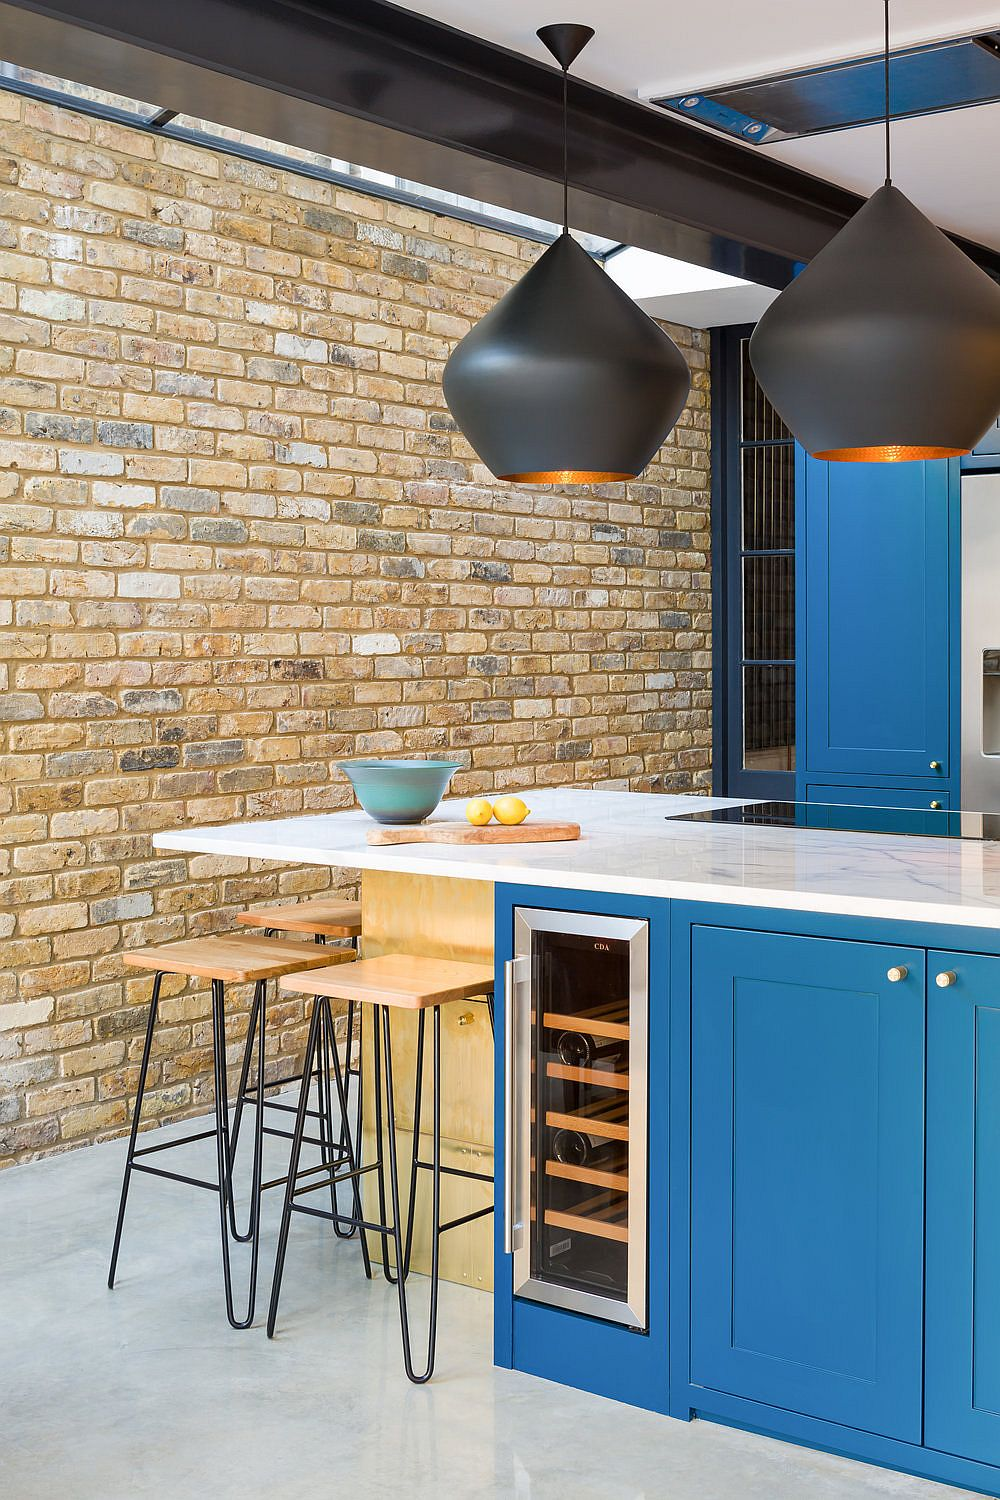 Tuck those slim bar stools under the breakfast bar to save space in the kitchen